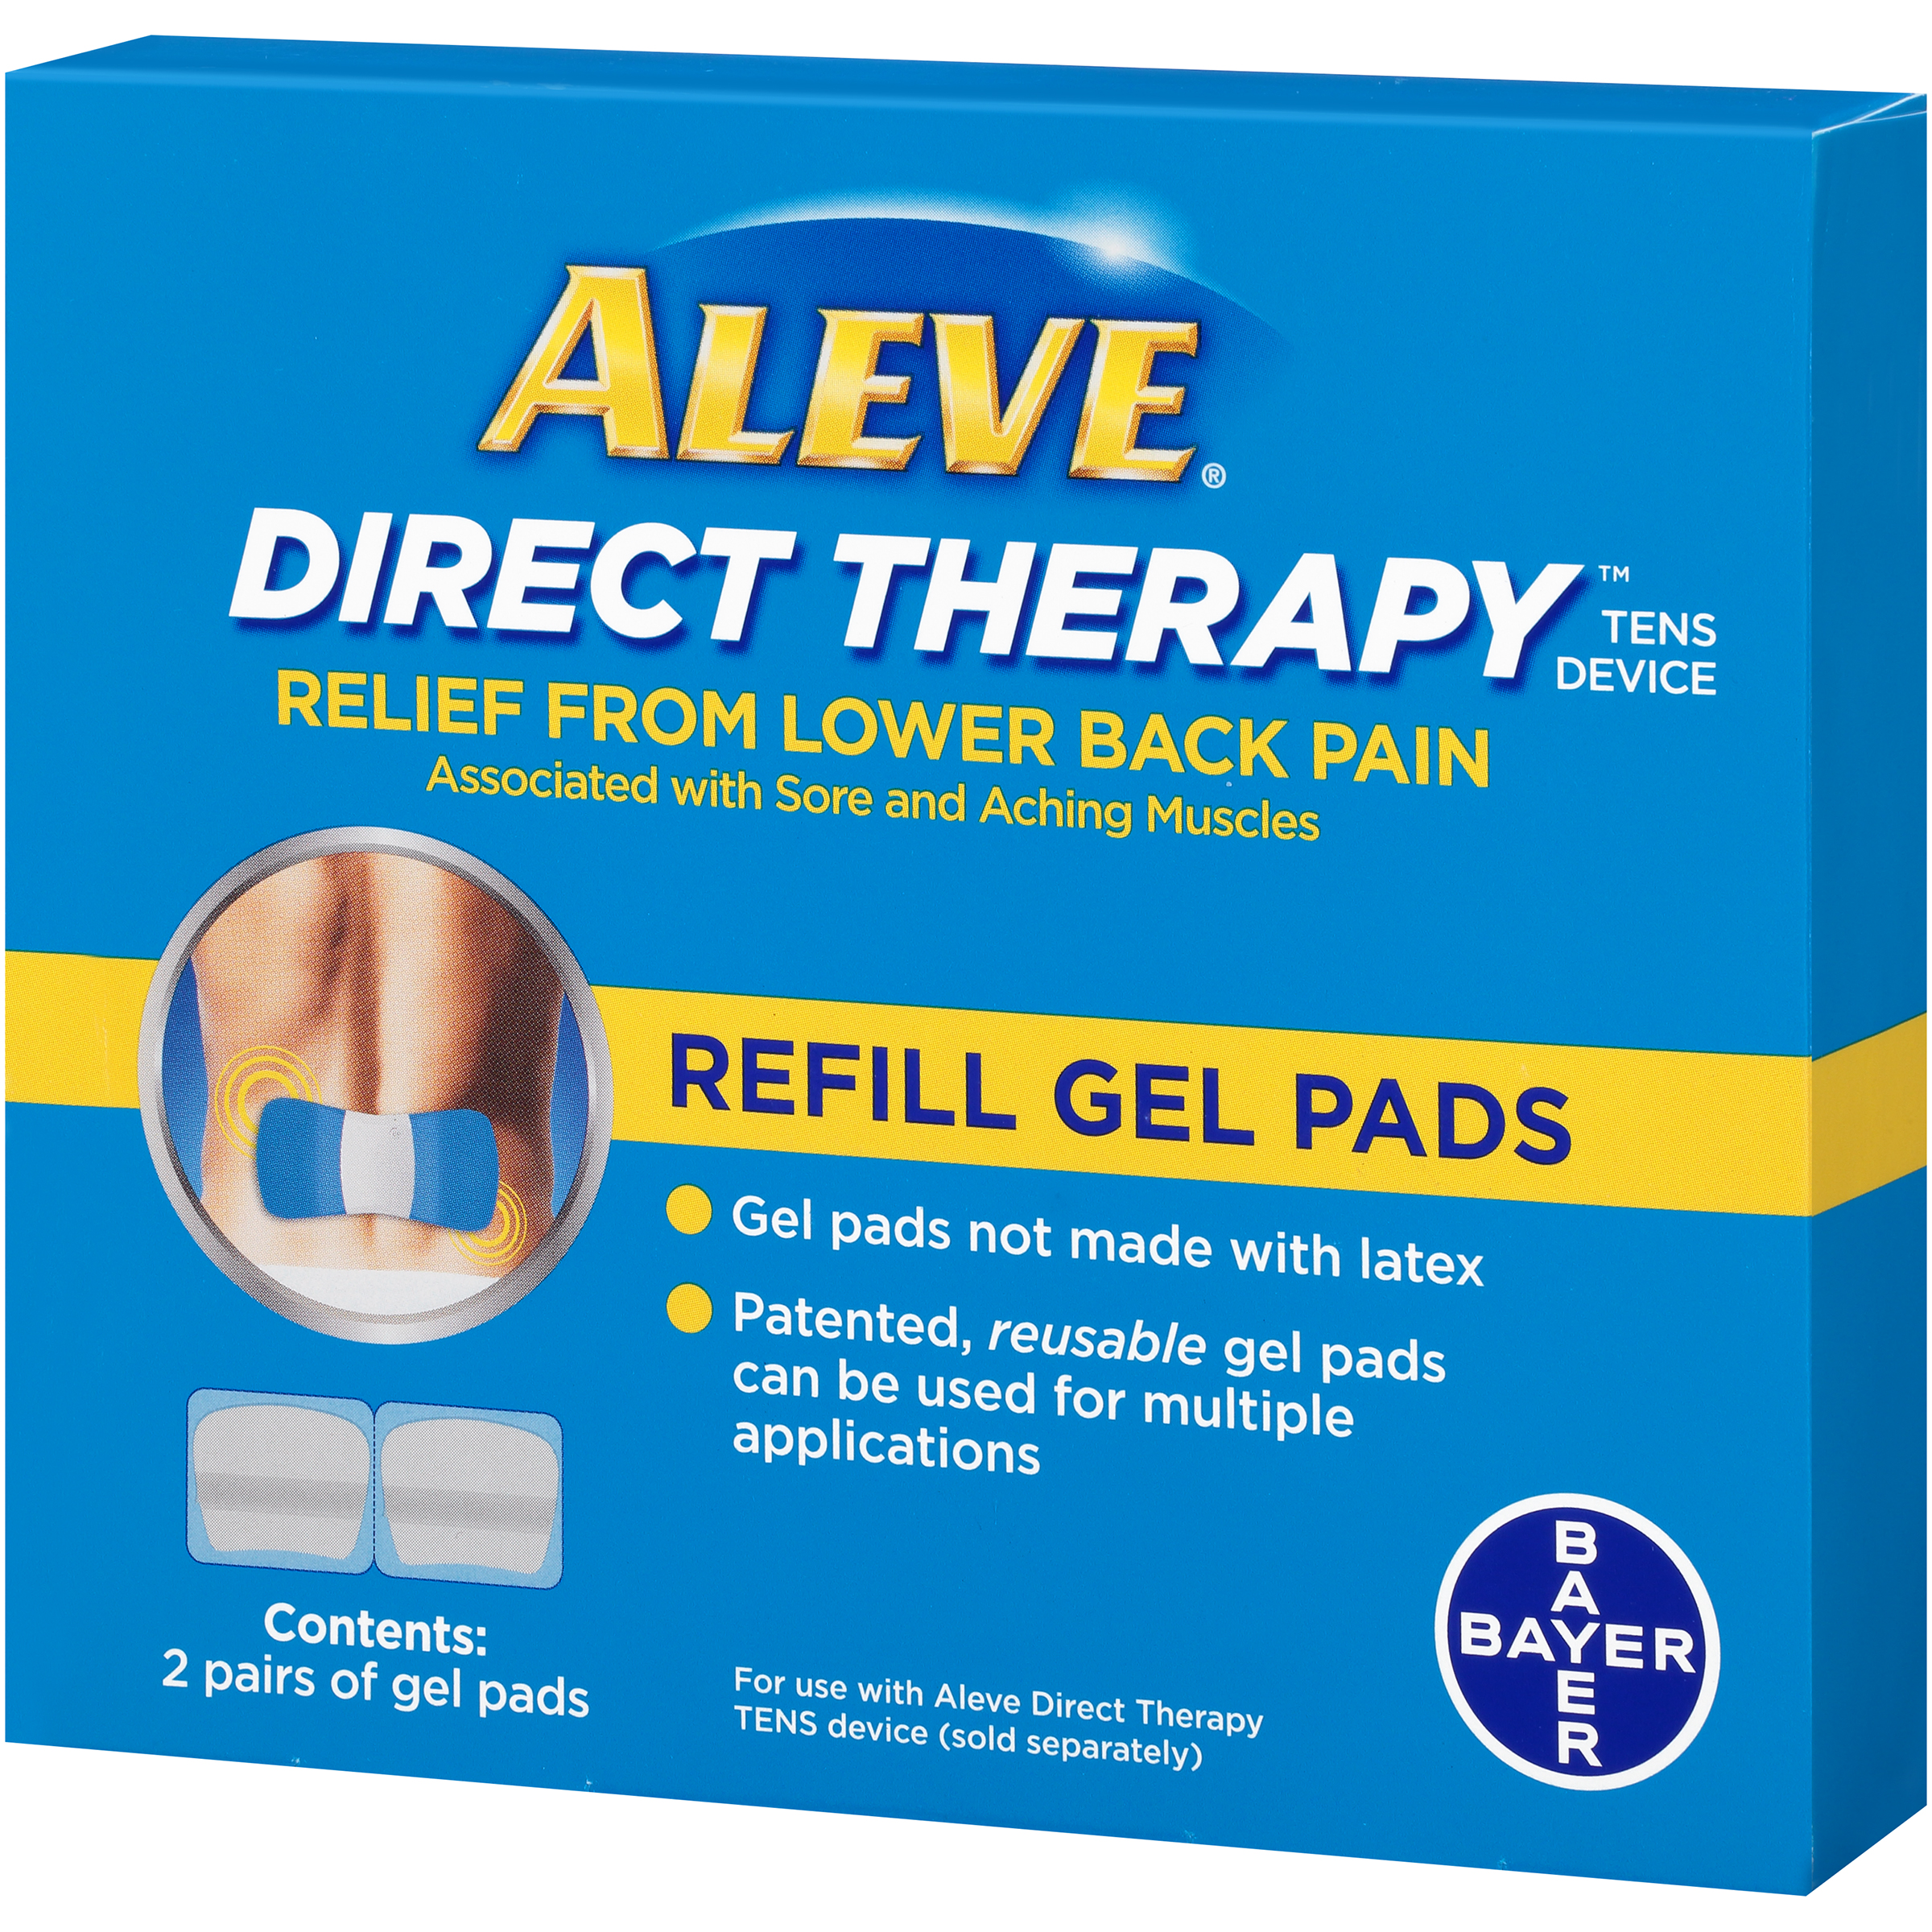 Aleve Direct Therapy Relief From Lower Back Pain Refill Gel Pads 2